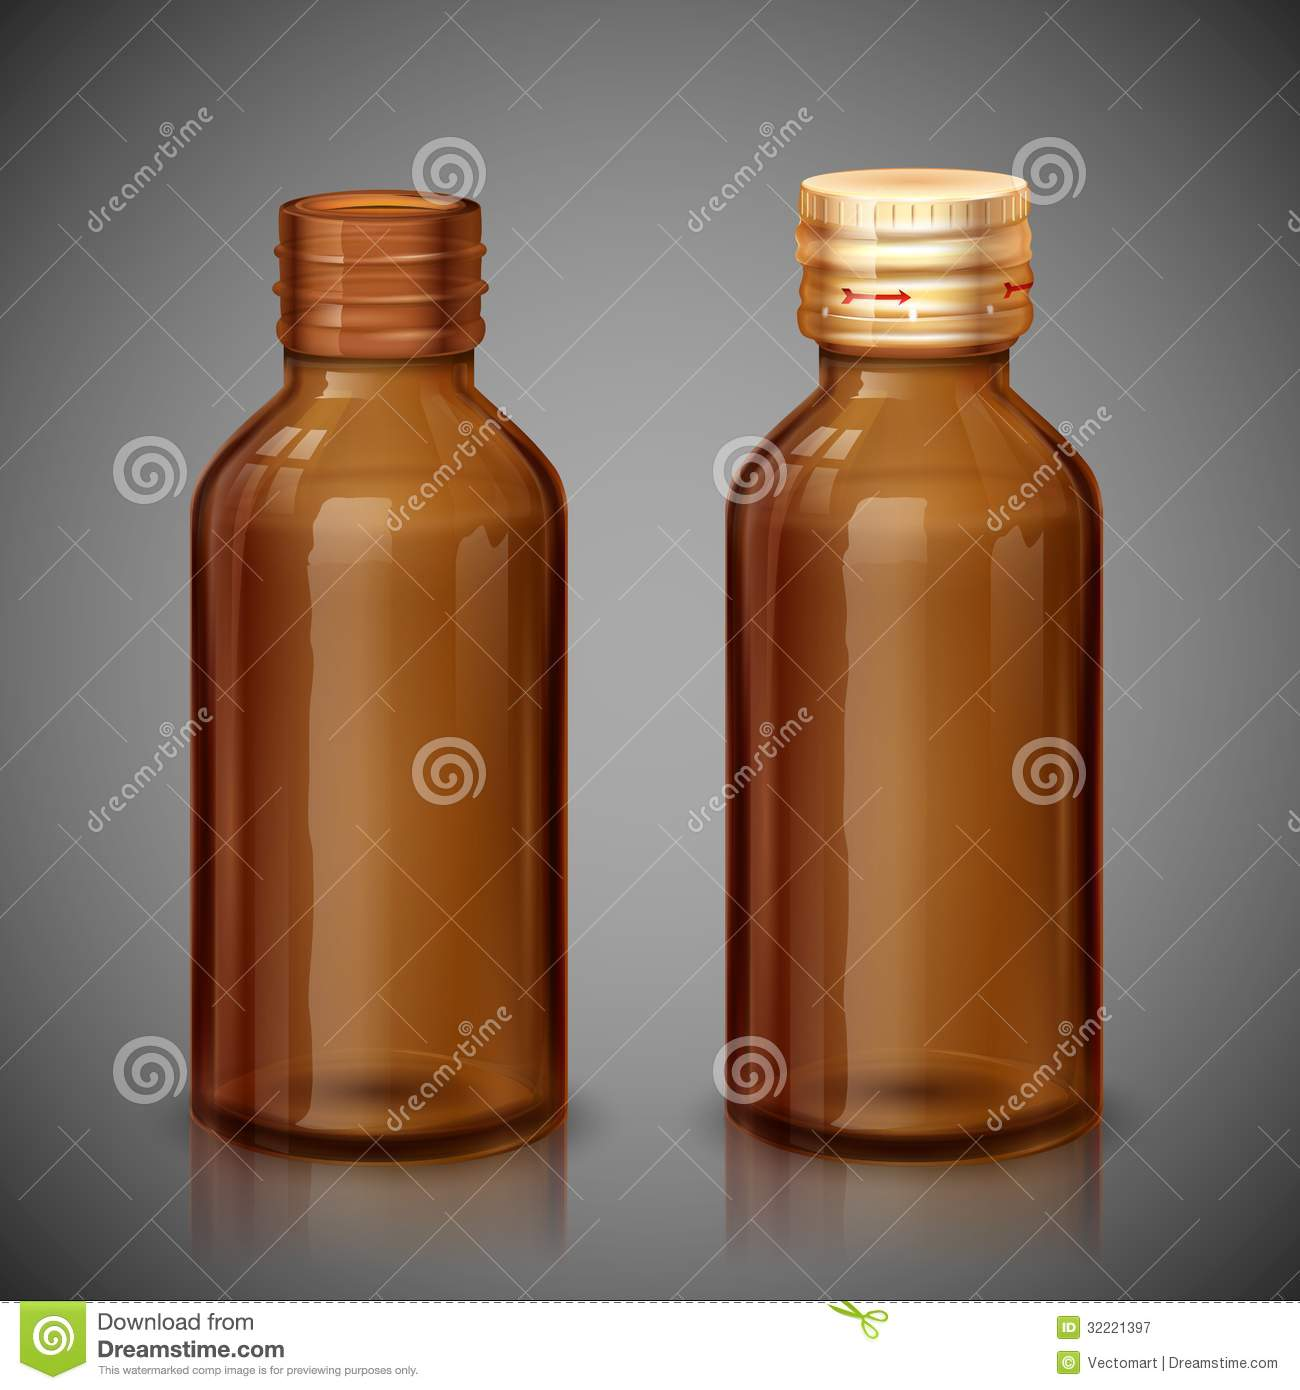 Medicine Syrup Bottle Royalty Free Stock Photography